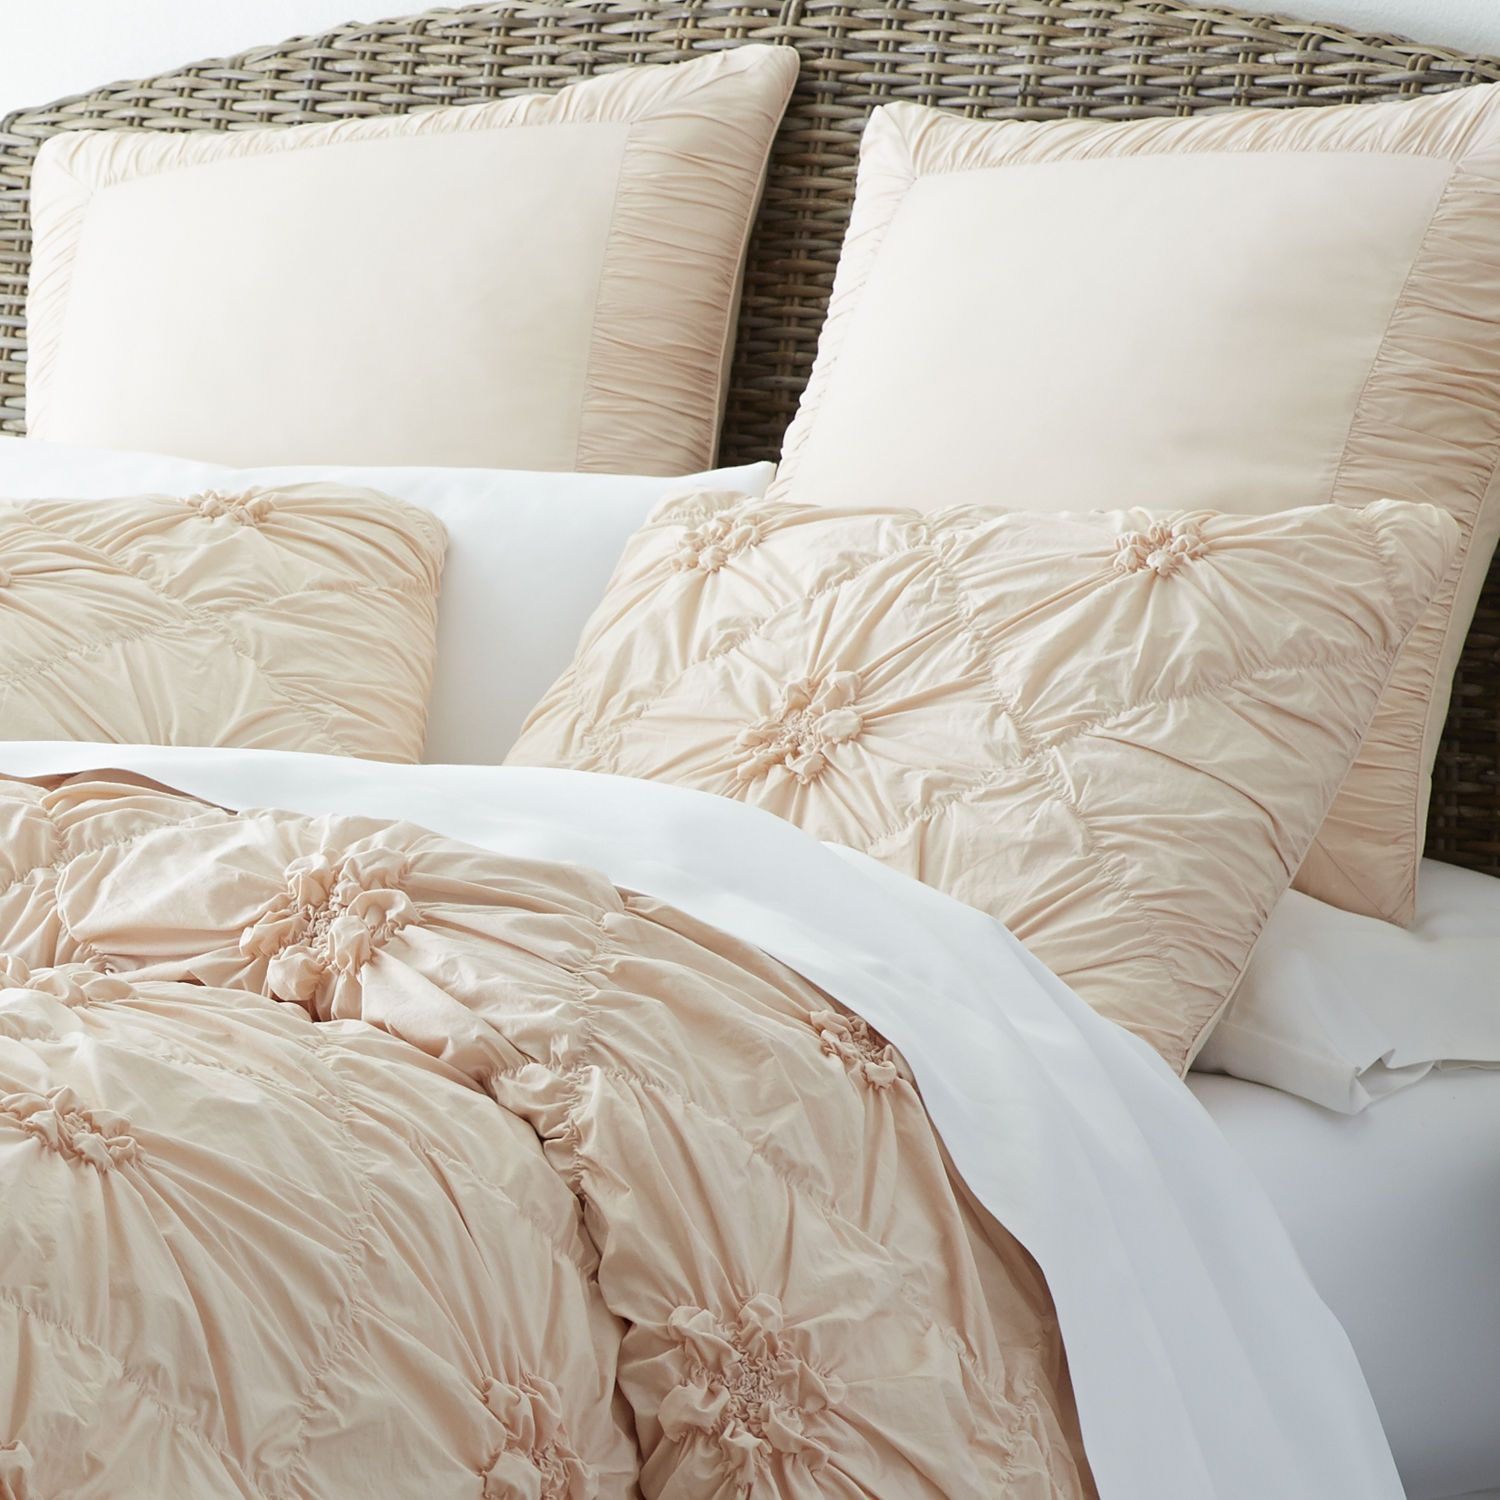 Turtles And Tails Master Bedroom Before And After: Savannah Bedding & Duvet - Blush